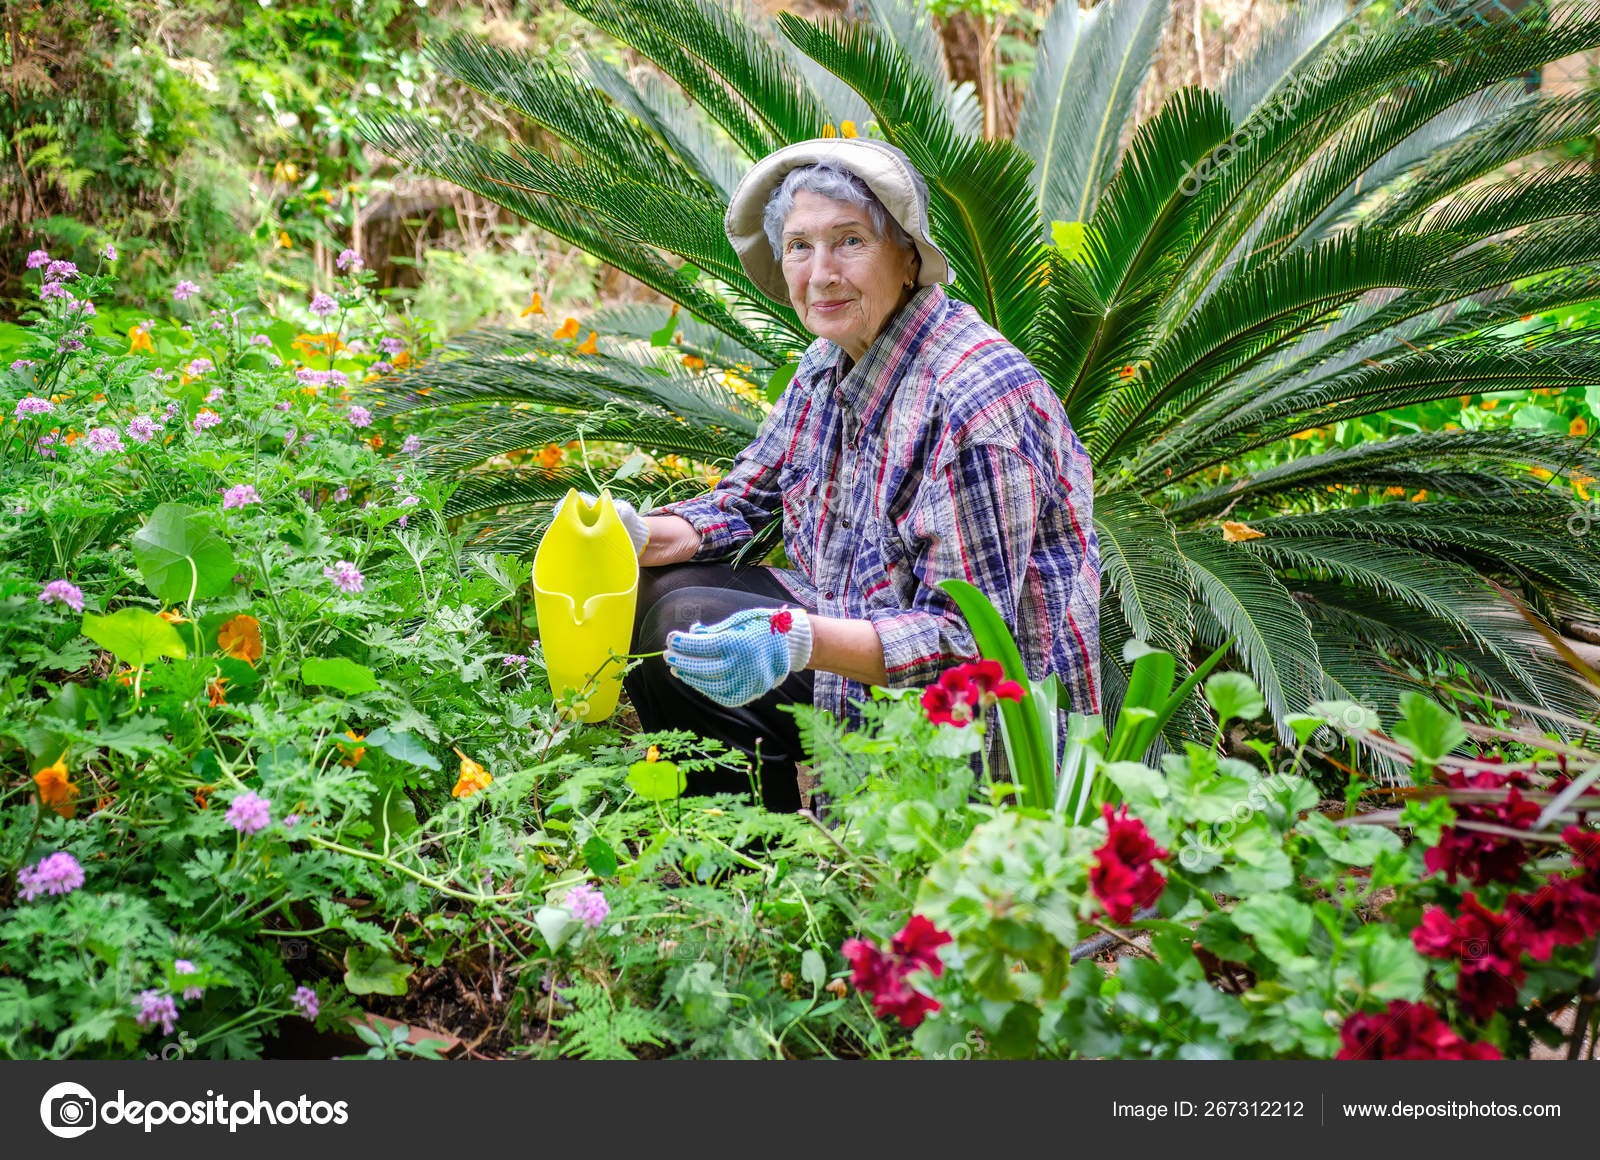 Senior adult woman in the male big sized plaid shirt sits in the center of a flower bed.